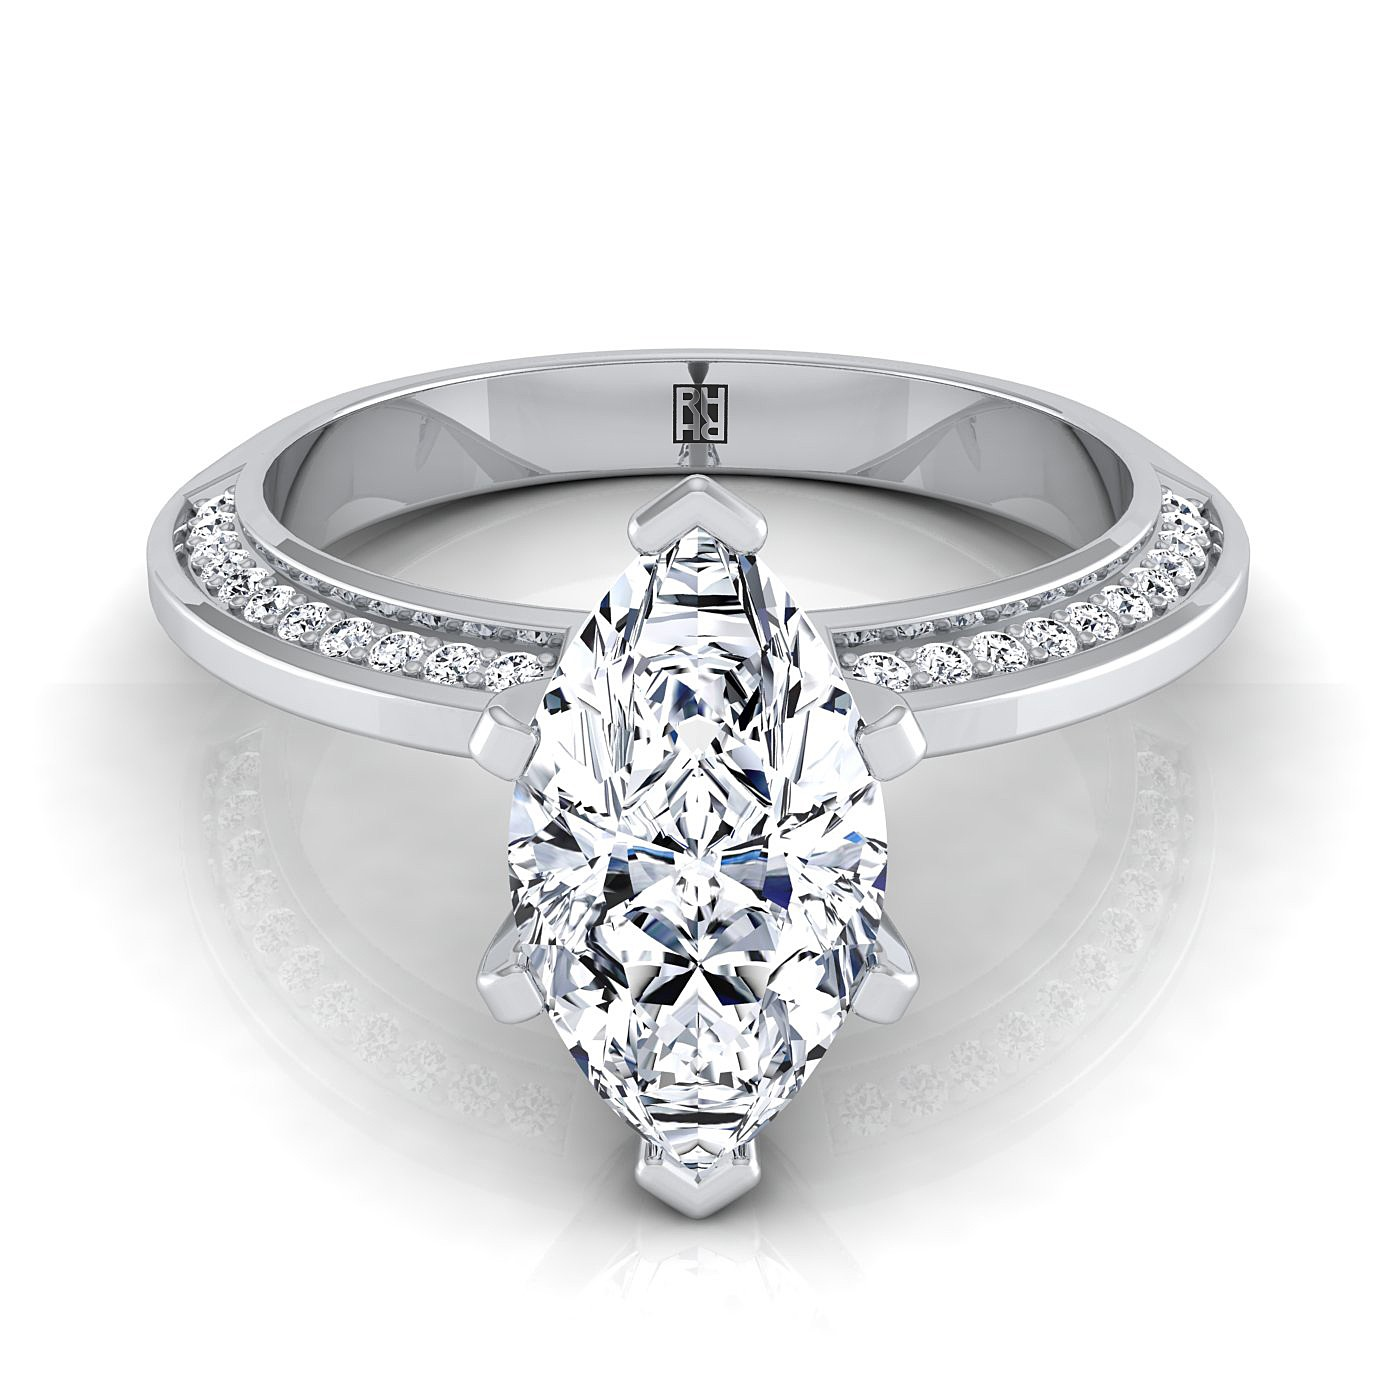 marquise engagement ring with knife edge pave gallery in 14k white gold - Marquise Wedding Rings